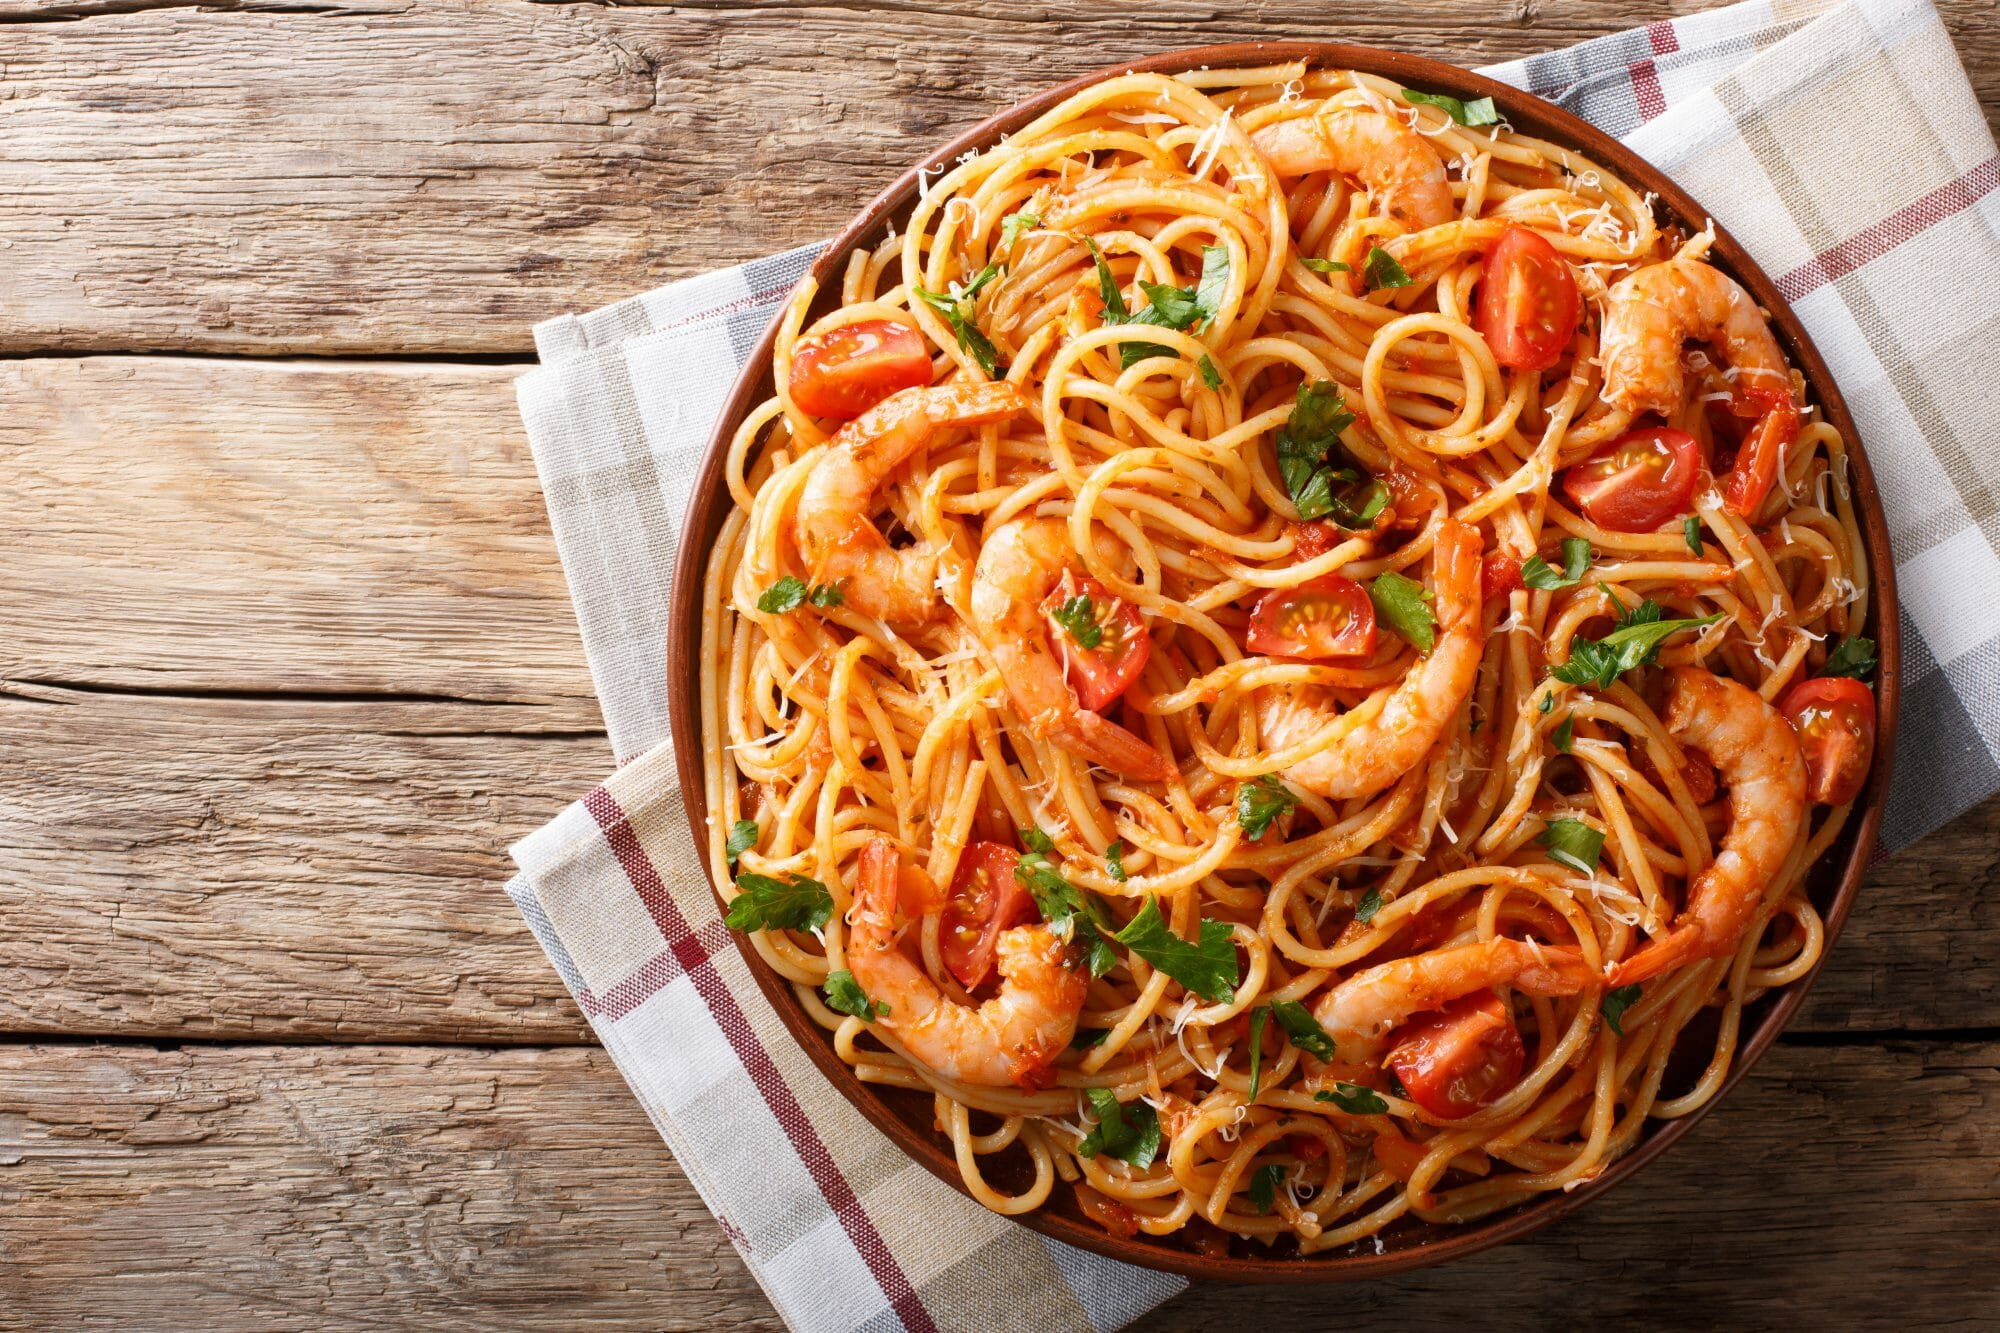 Spaghetti Shrimp Fra Diavolo Recipe with Black Truffle Arrabbiata Sauce